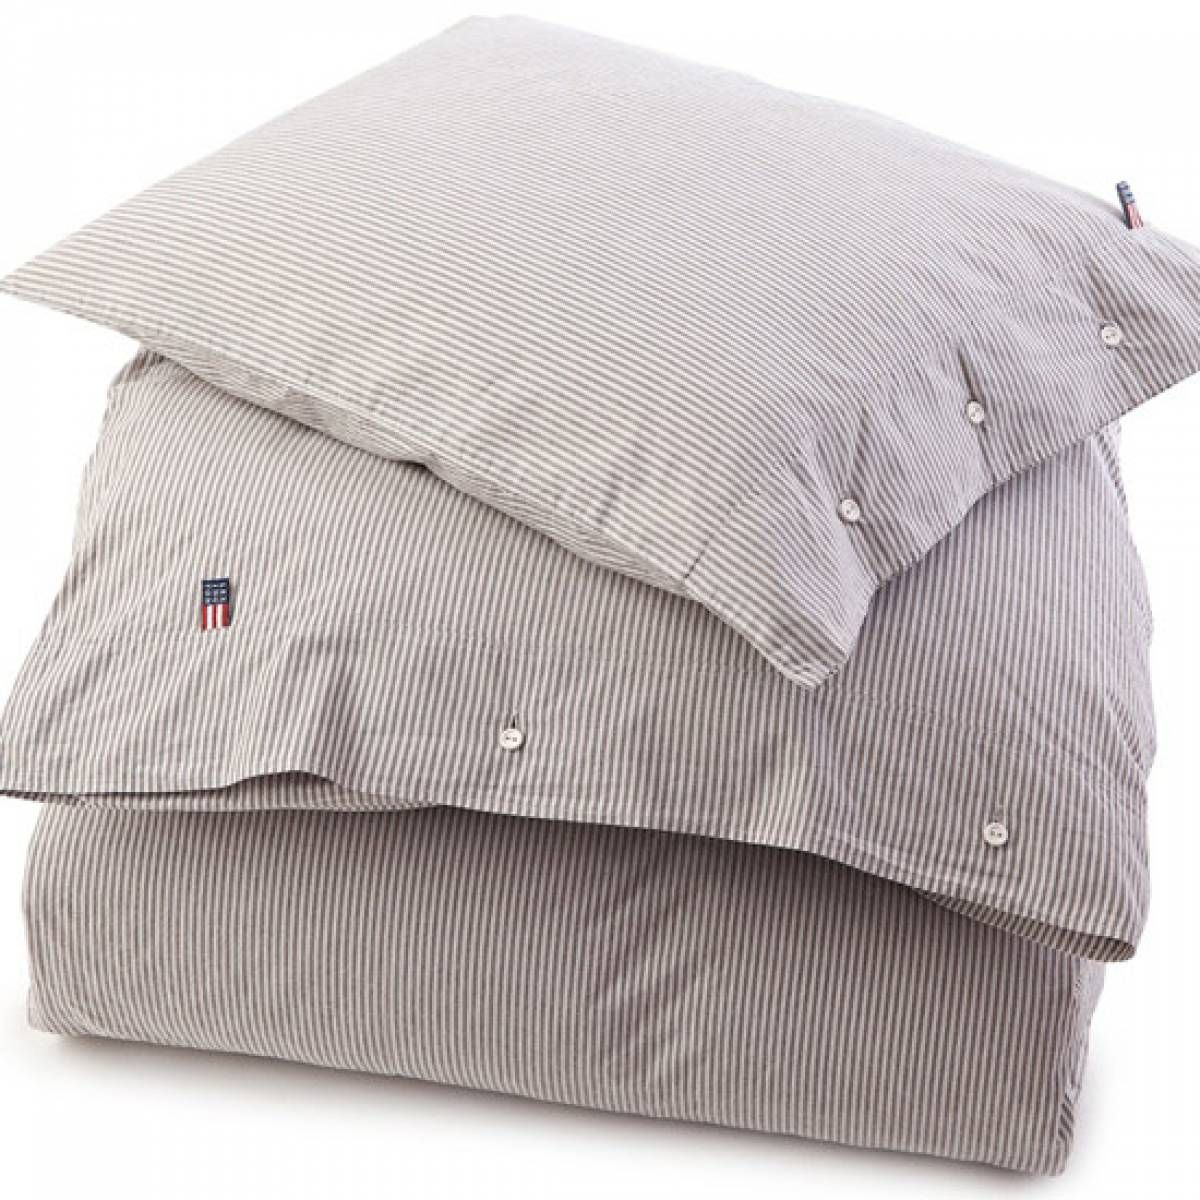 Lexington Bettwäsche Country Washed Popelin Gestreift Grau Lexington Bettwäsche Bettwäsche Bett